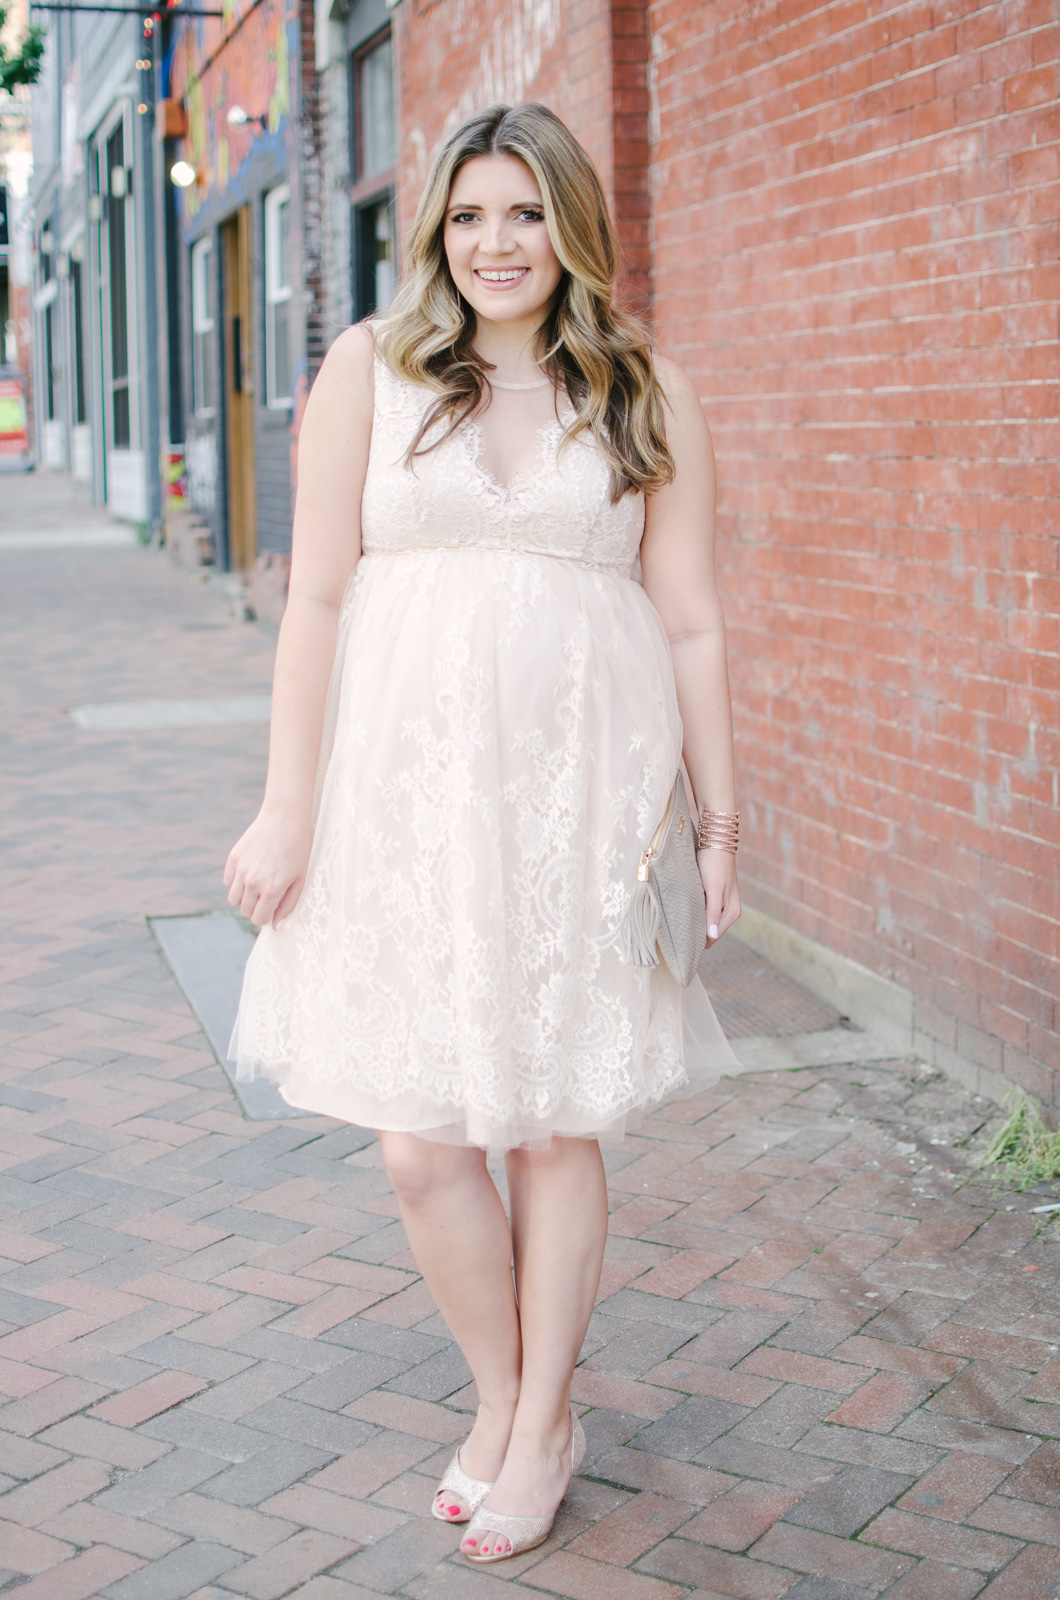 pregnant wedding guest style - what to wear to a wedding pregnant | bylaurenm.com